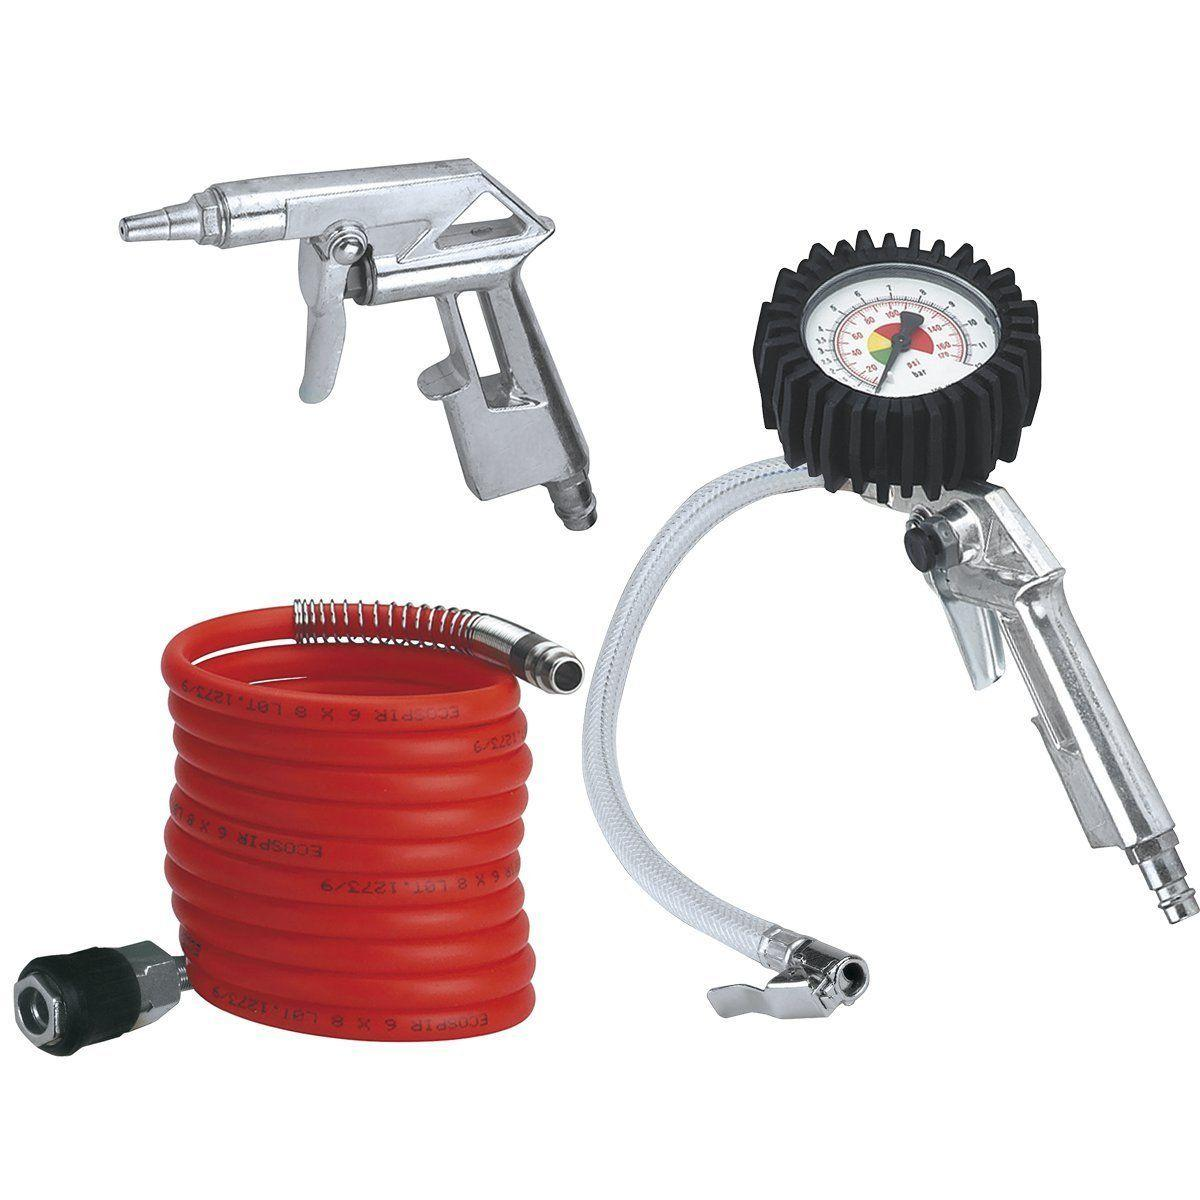 Set 3 accessori per compressore - Einhell